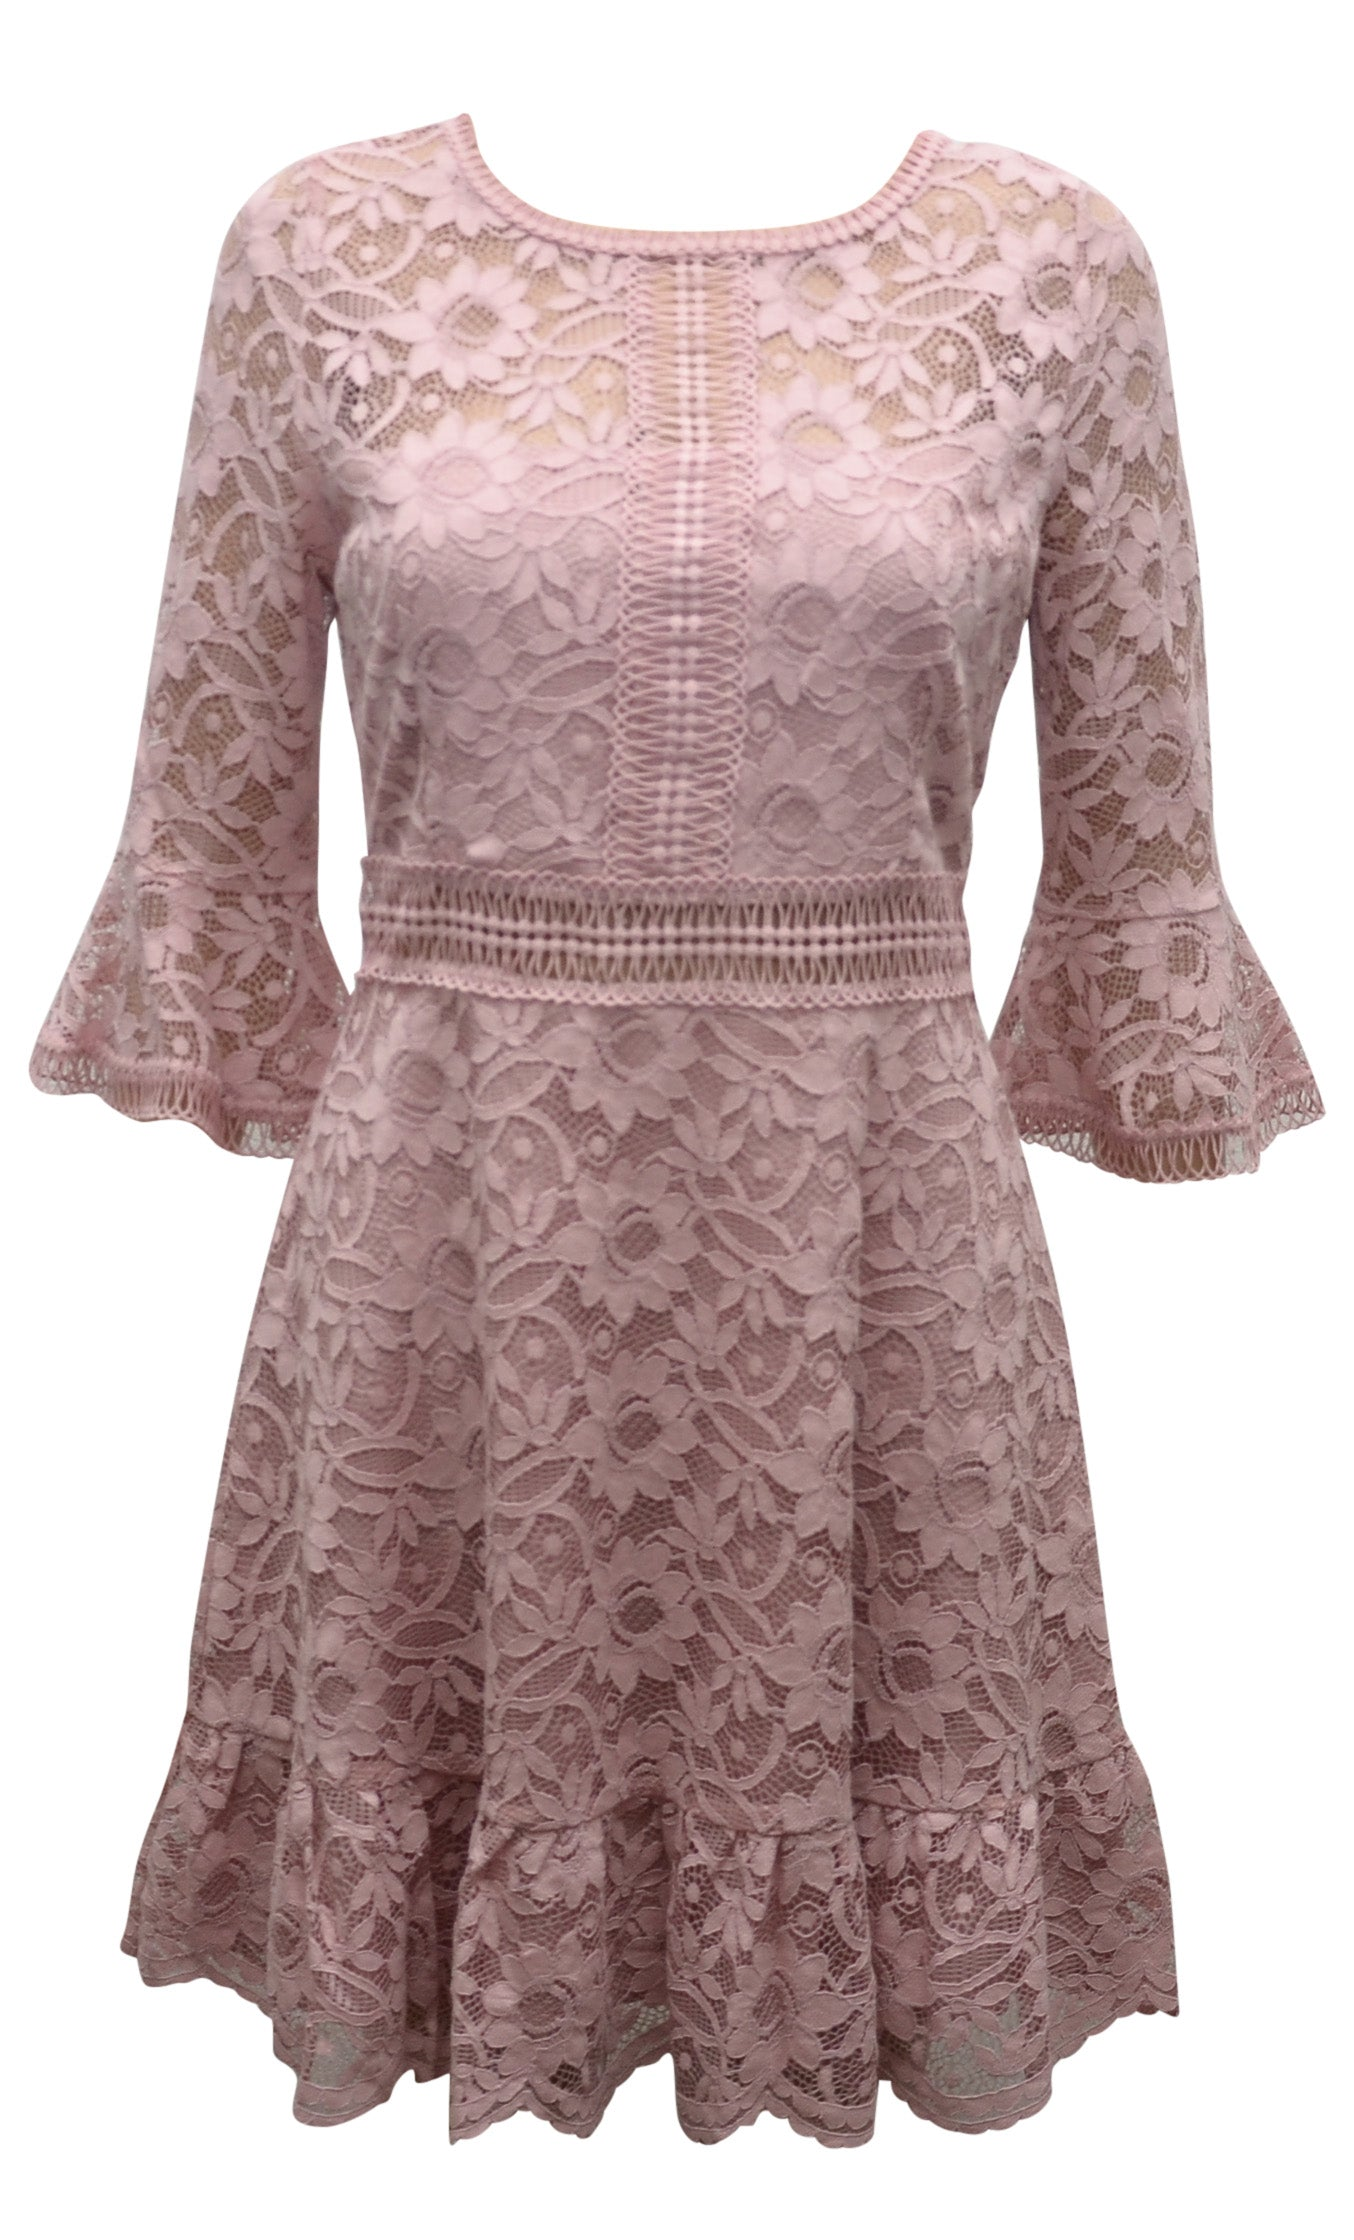 Rose Lace dress by BB Dakota